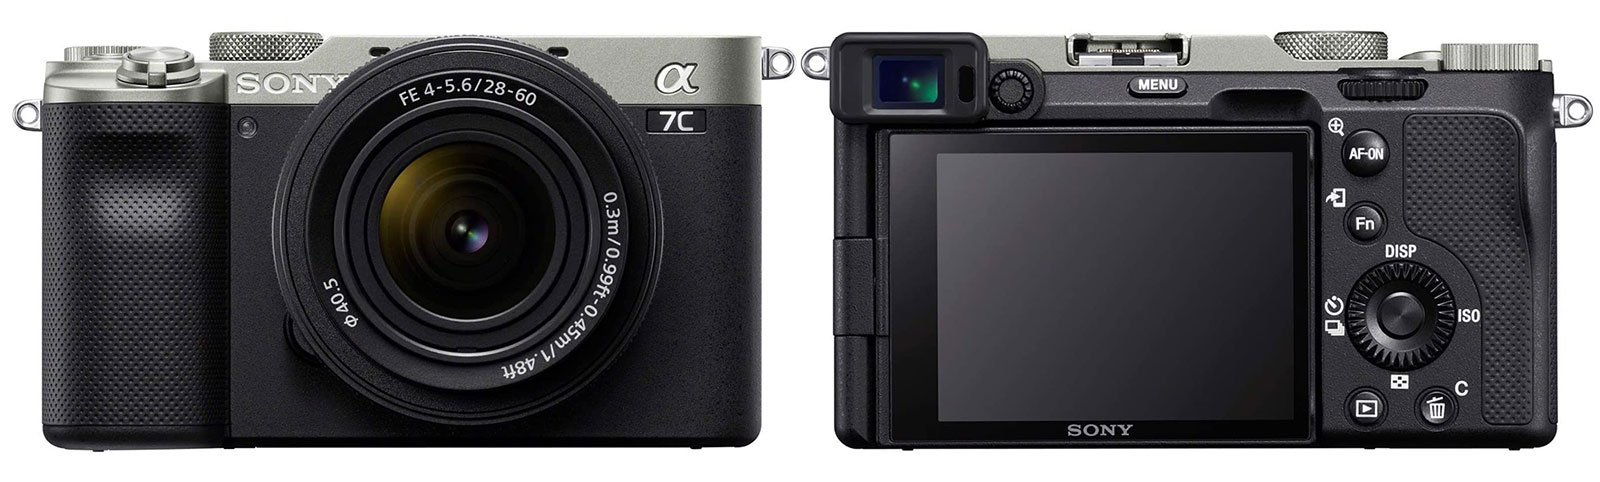 Sony a7C front & back